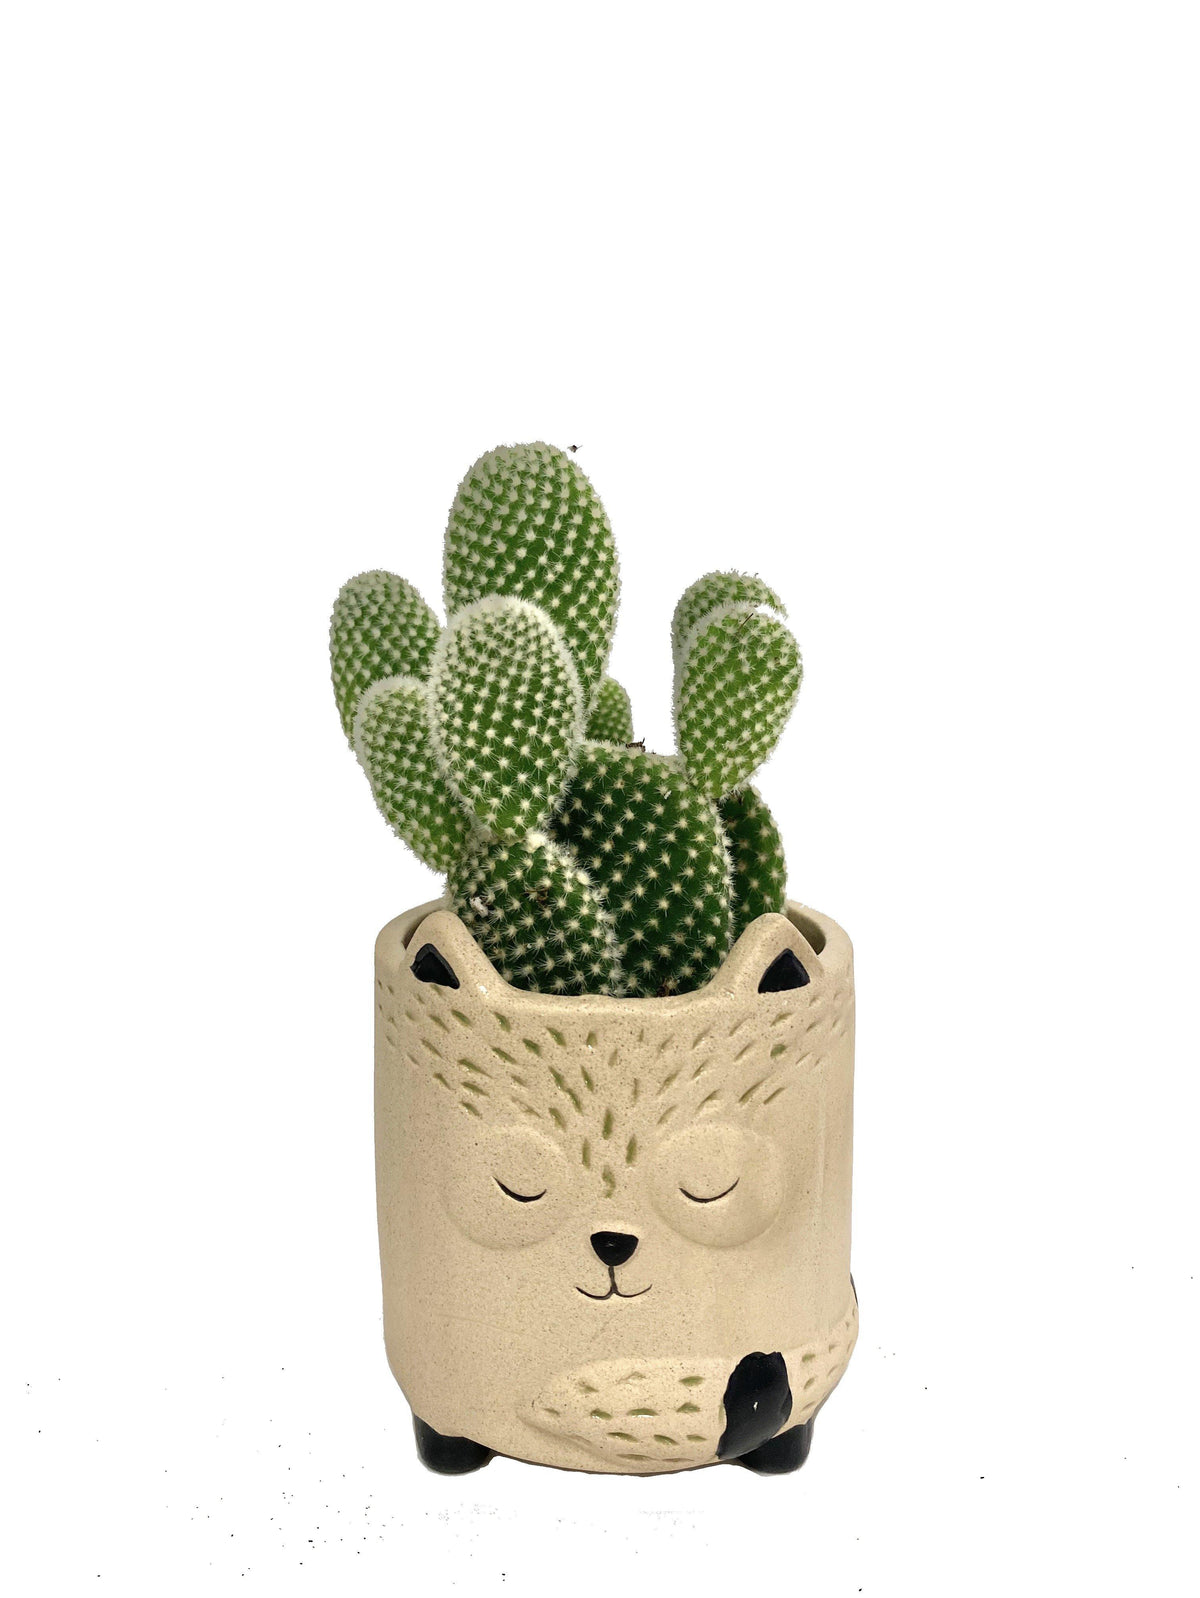 Animal Planters - Geoponics Inc